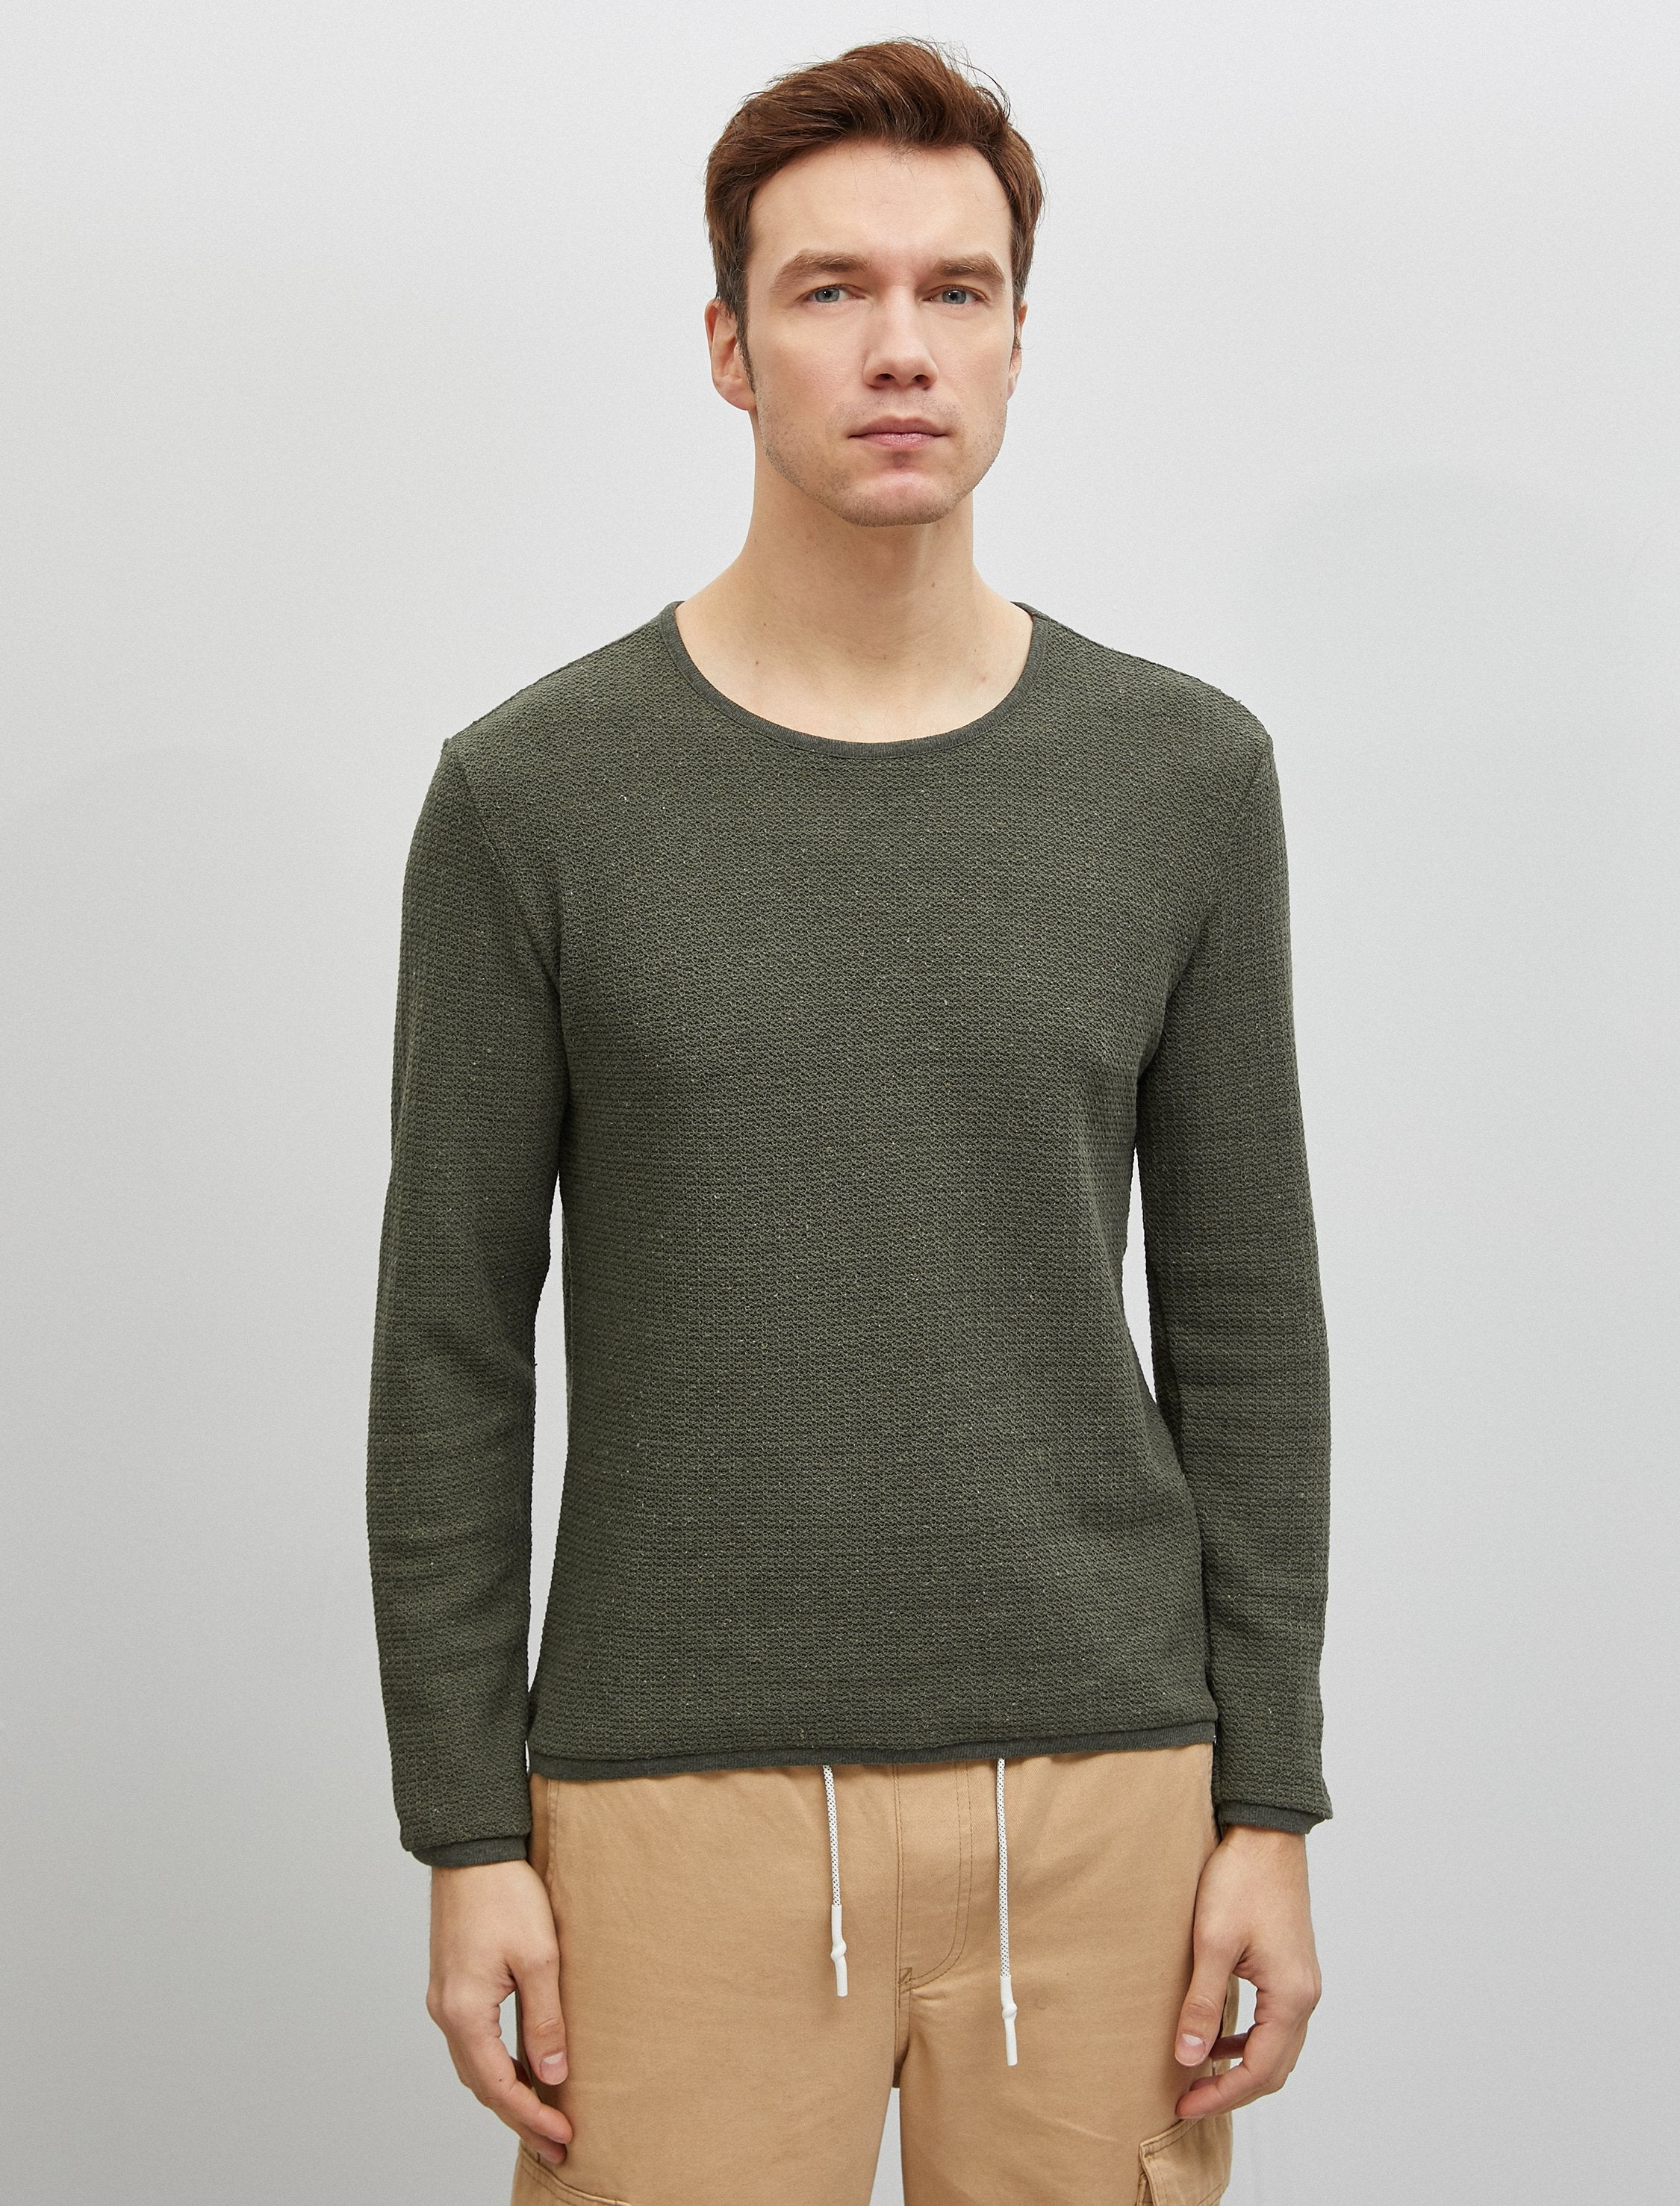 Textured Crew Neck Sweater in Olive